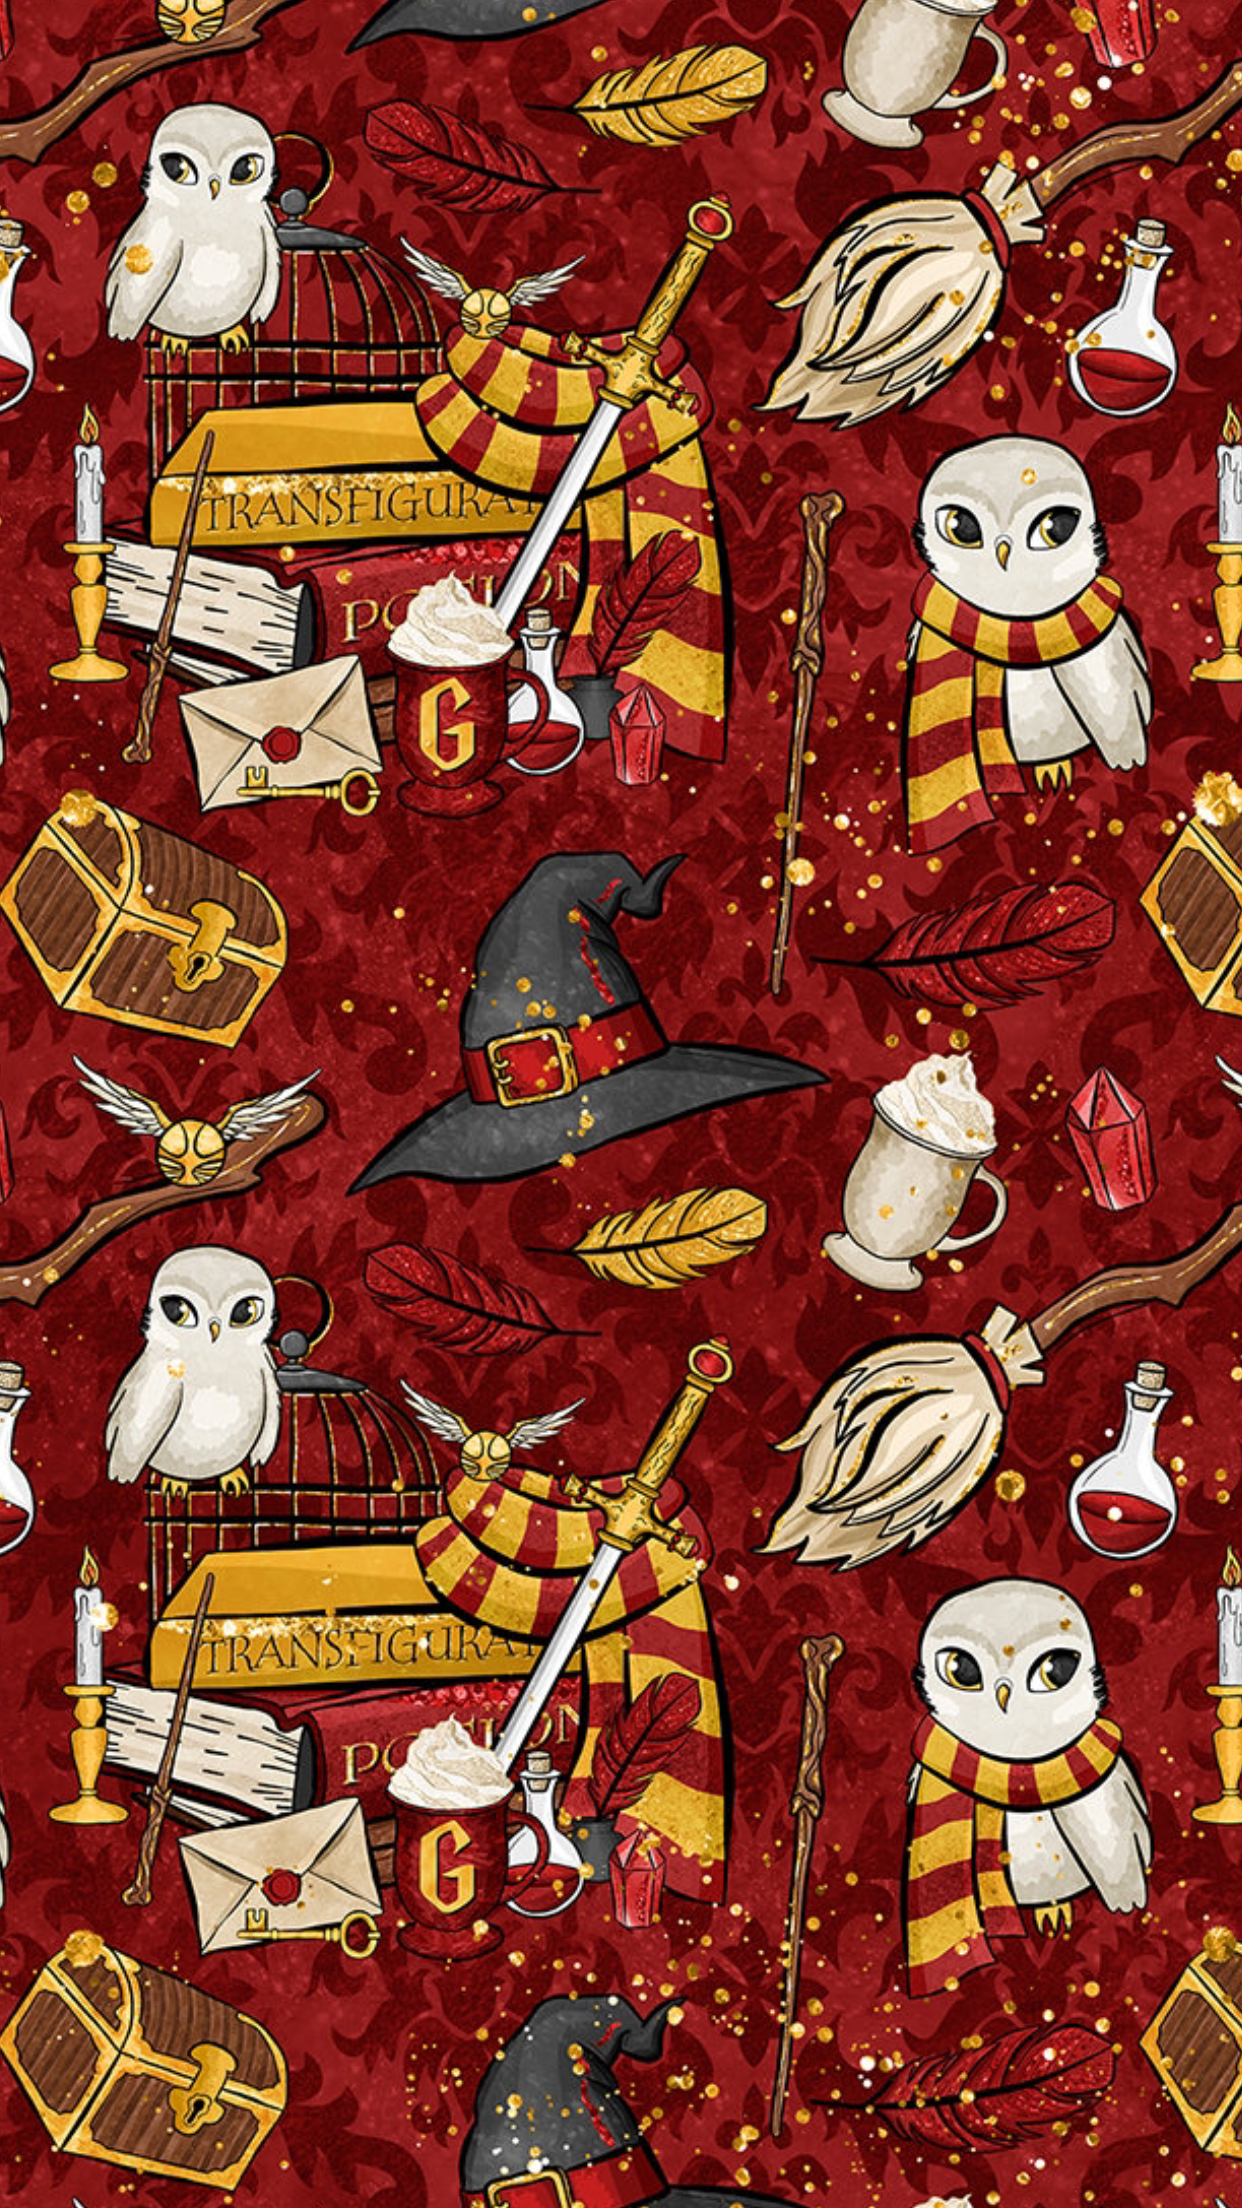 Popular Wallpaper Harry Potter Colorful - 5c85662631da0dadb1abee75cf937018  Collection_778788.png